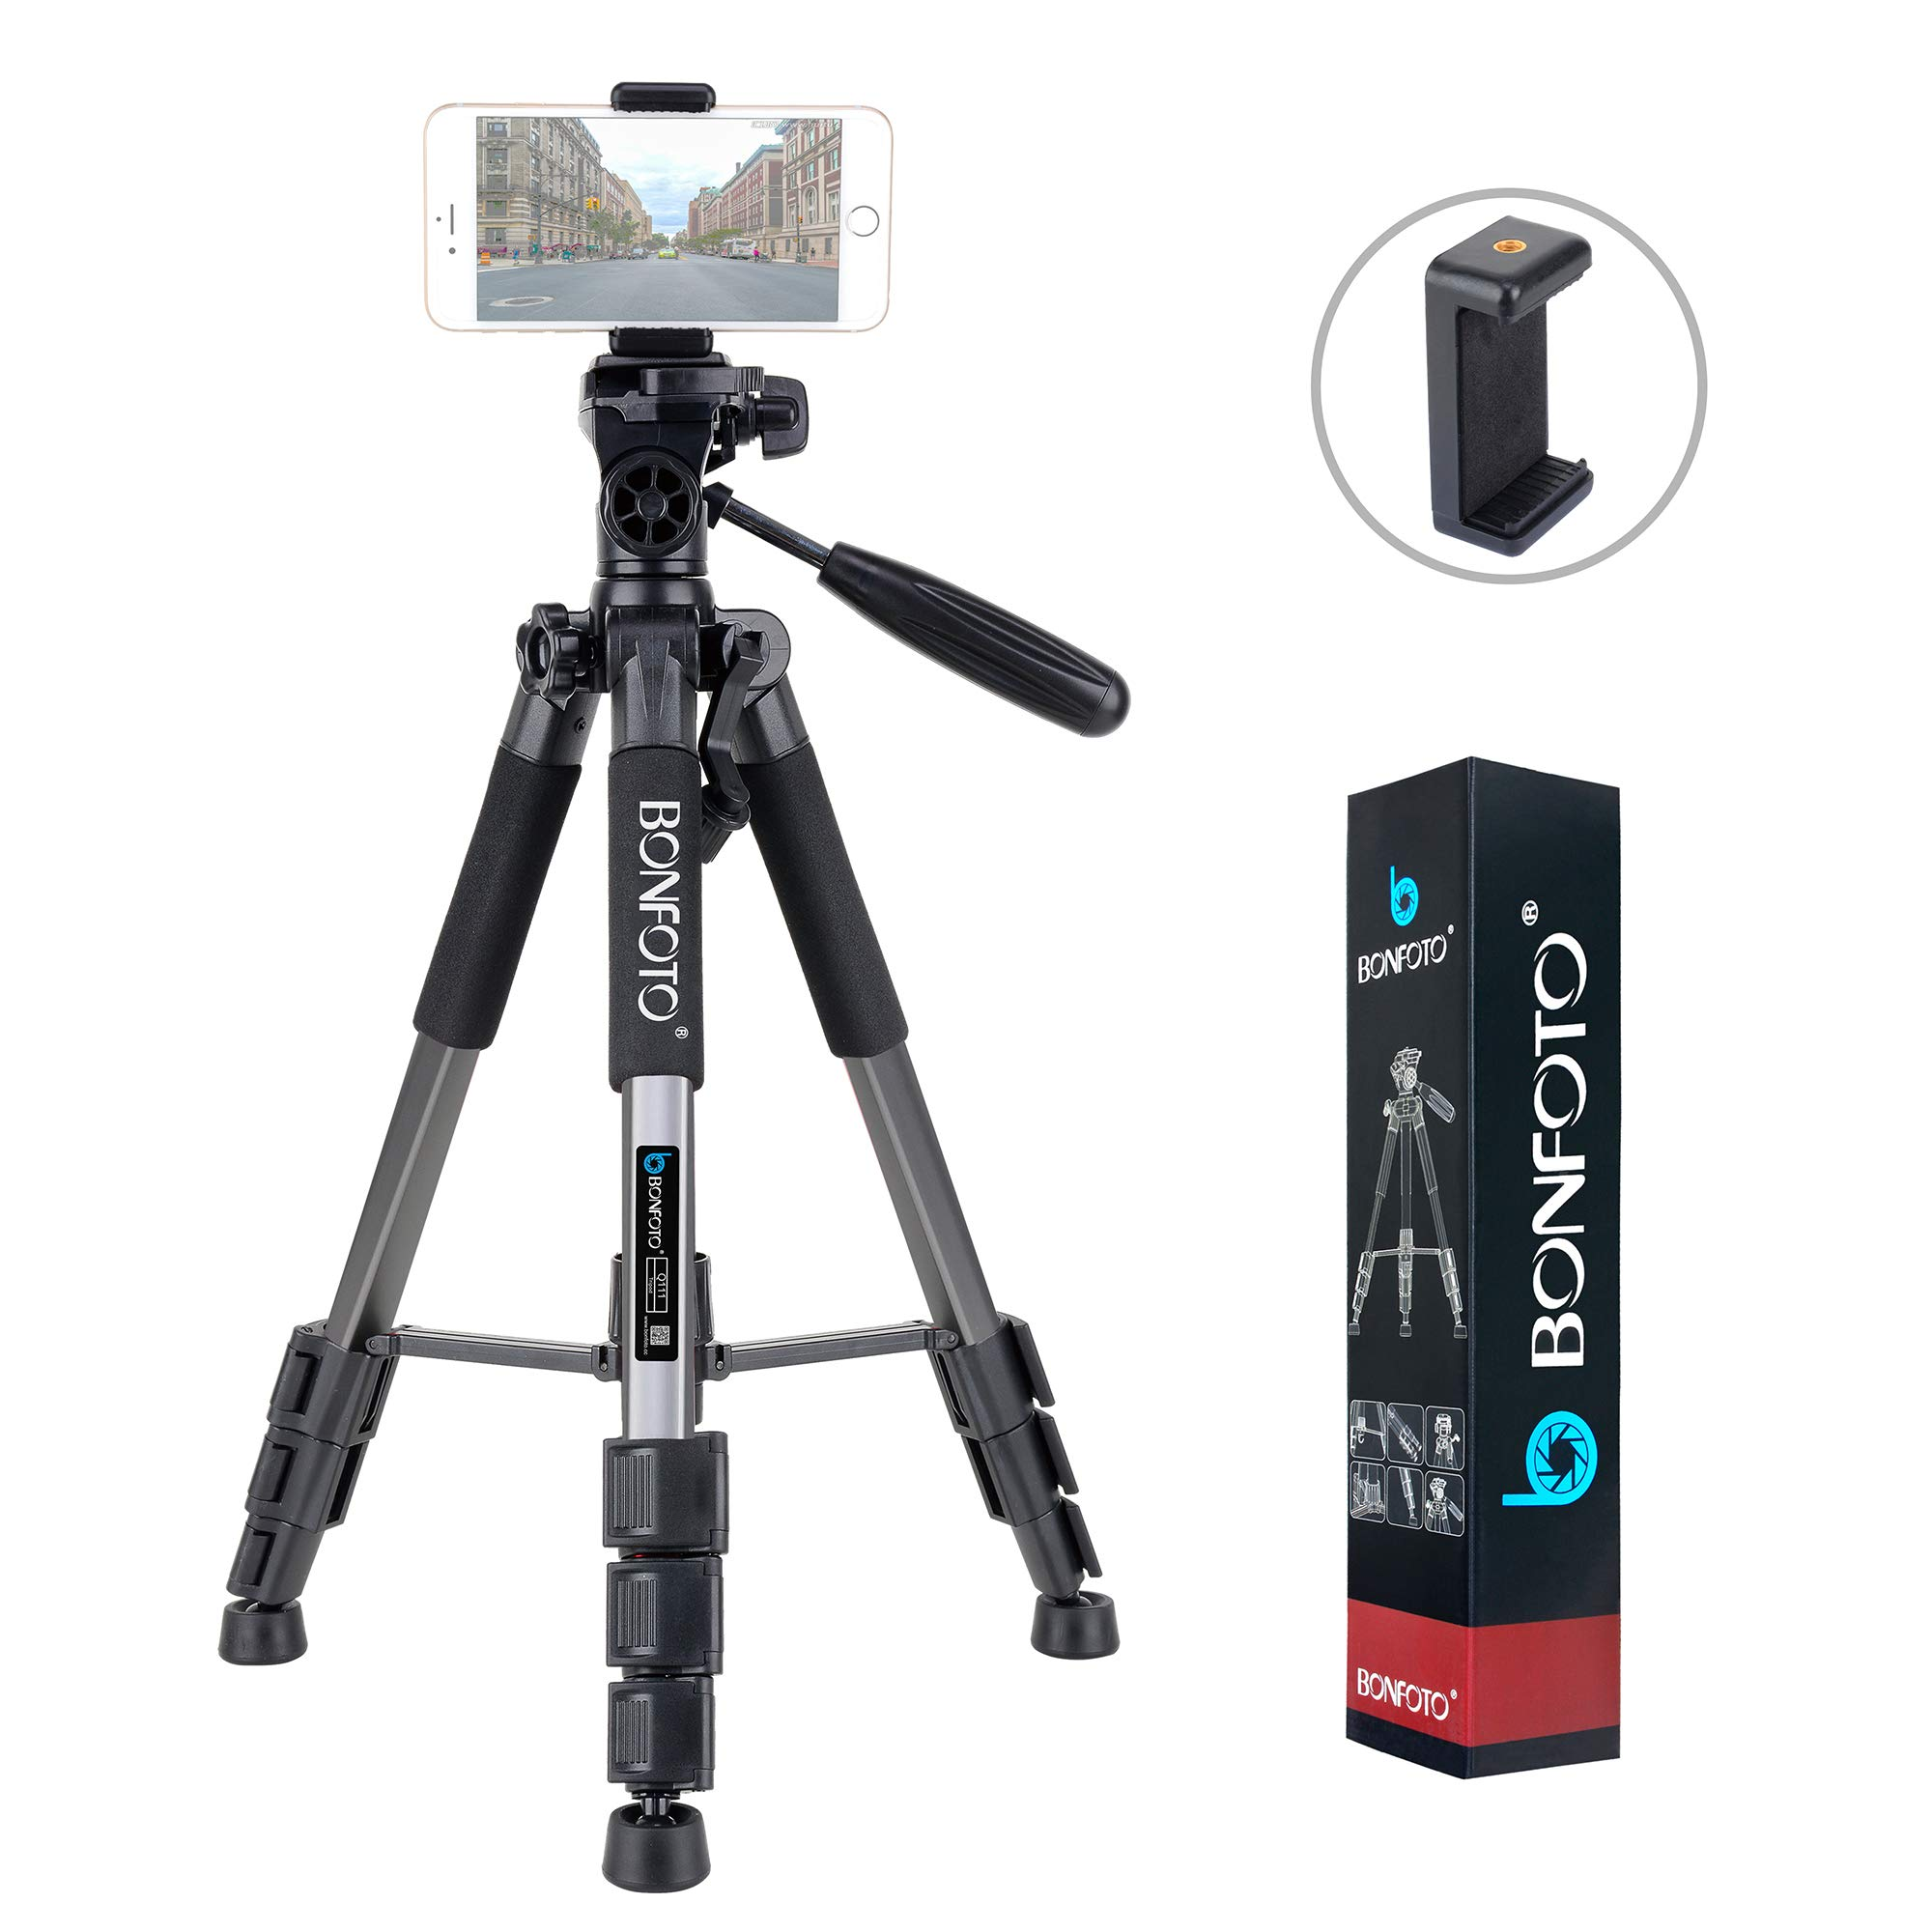 BONFOTO Q111 55-Inch Professional Compact Aluminum Camera Tripod Camcorder Stand with Pan Head Plate and Phone Holder Mount for DSLR Canon Nikon Sony DV Video and Smartphones (Silver gray)